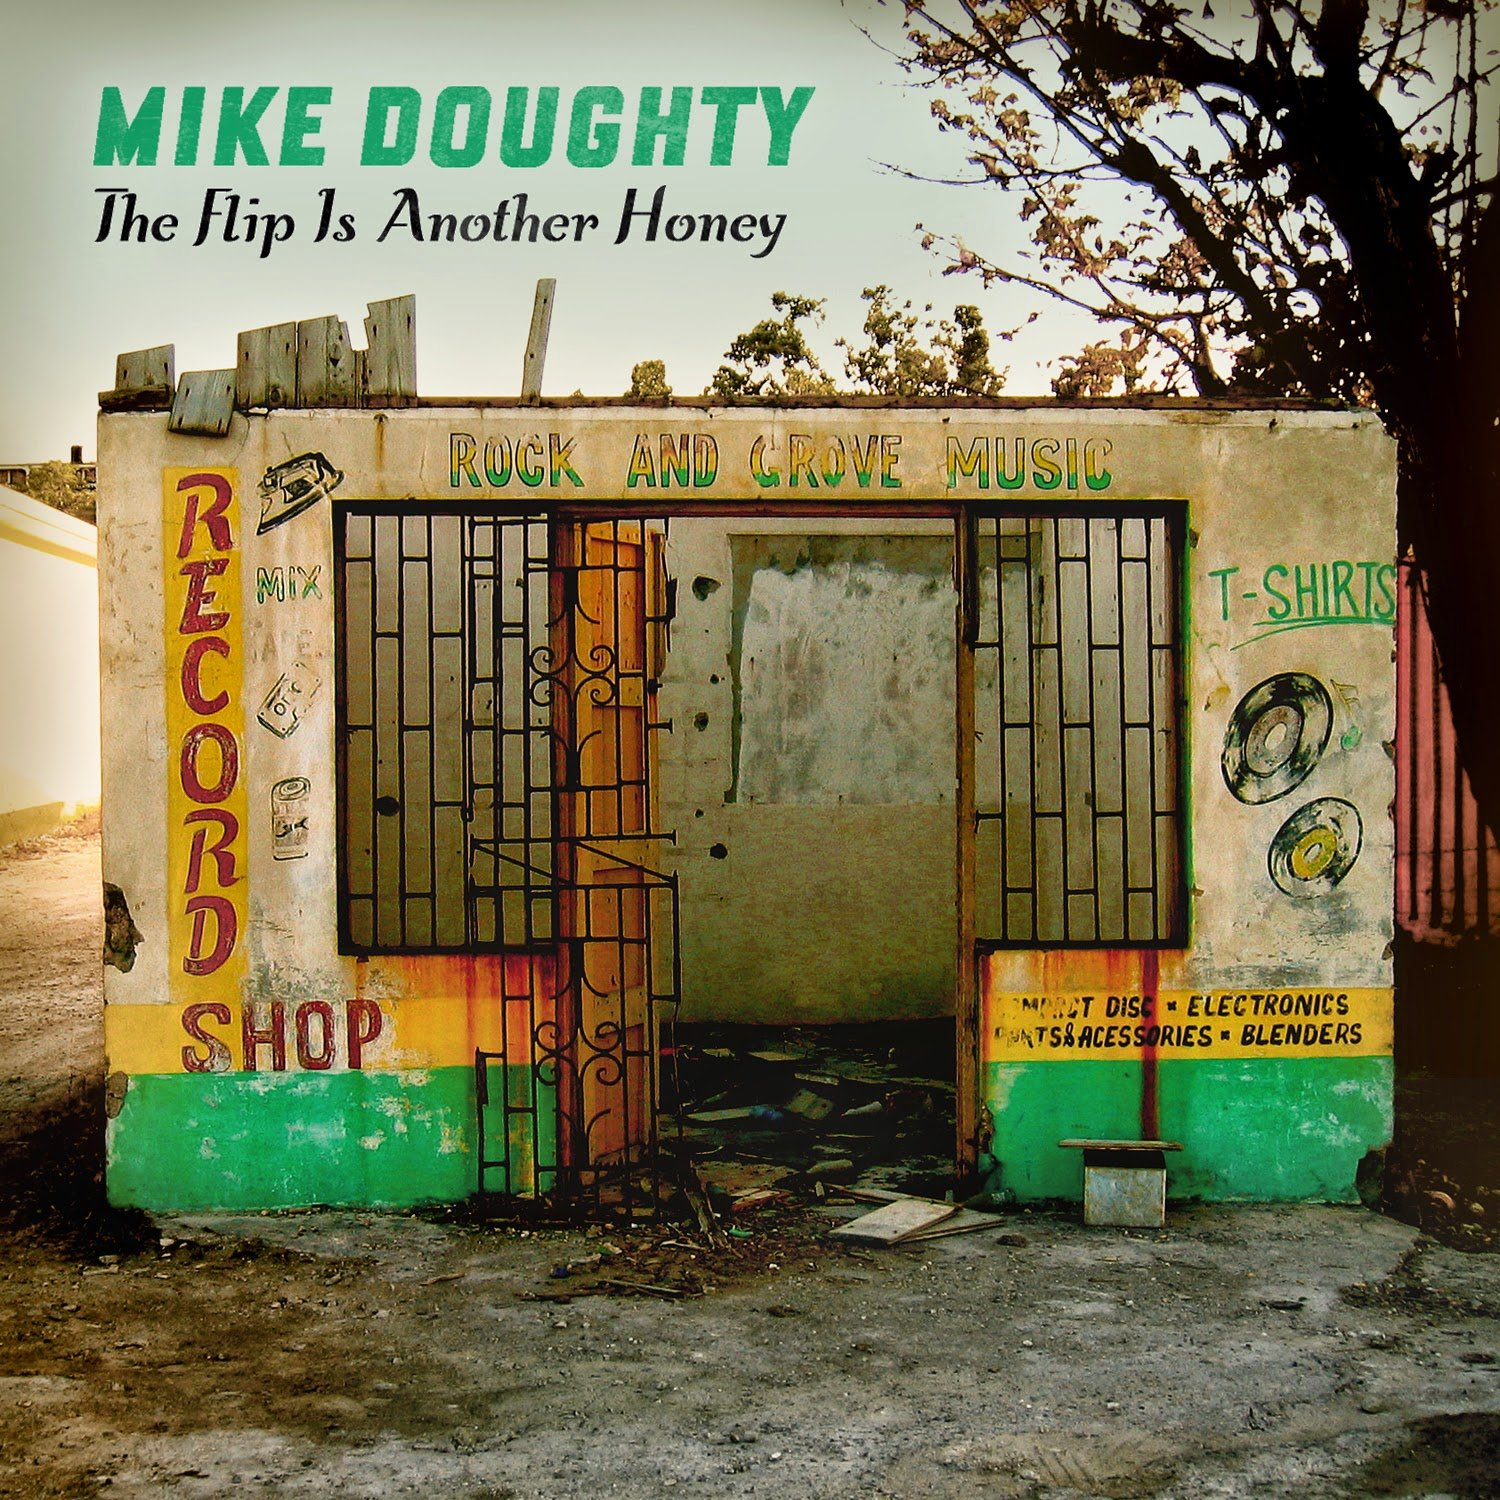 Mike Doughty, The Flip Is Another Honey